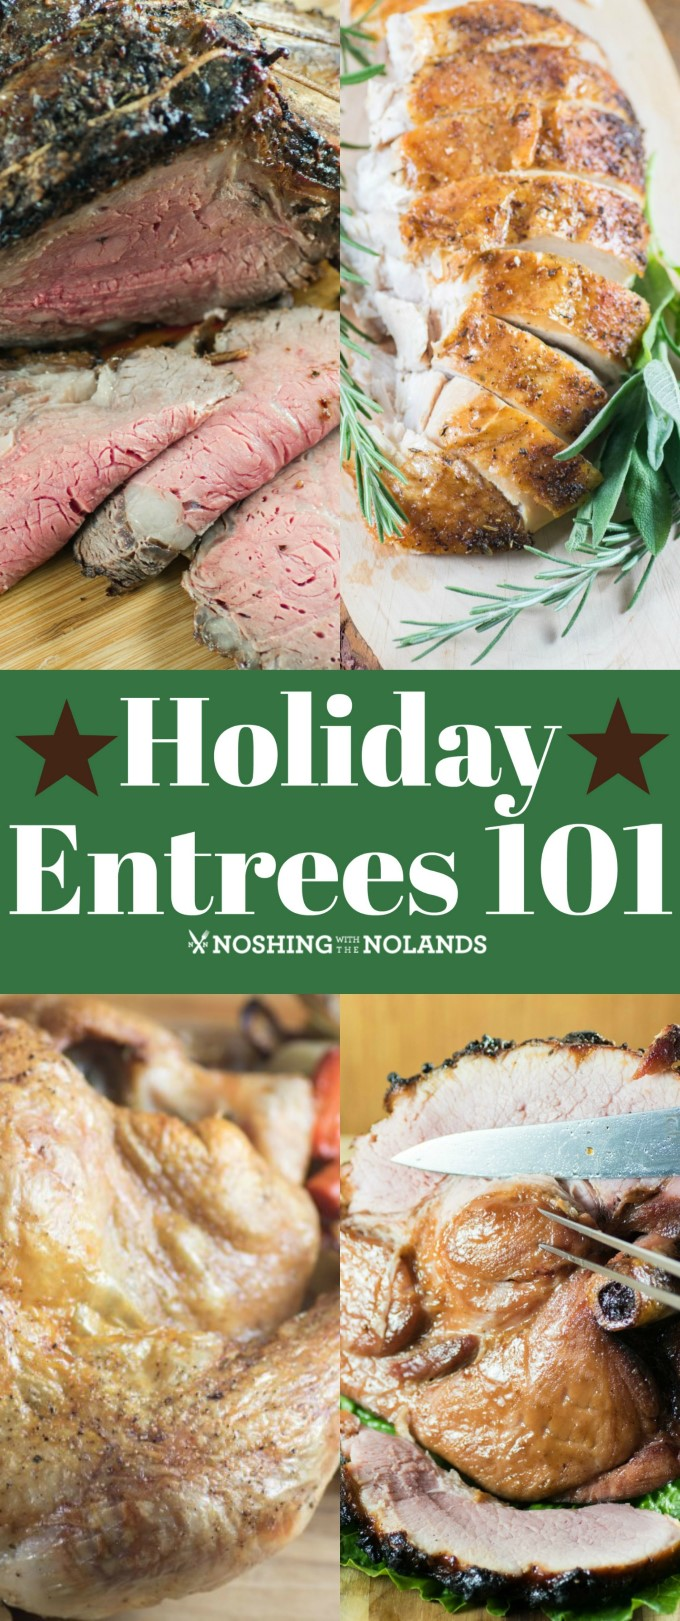 Holiday Entrees 101 will have you set for an festive meal from roast beef to turkey, ham and chicken. #entrees #holidays #mains